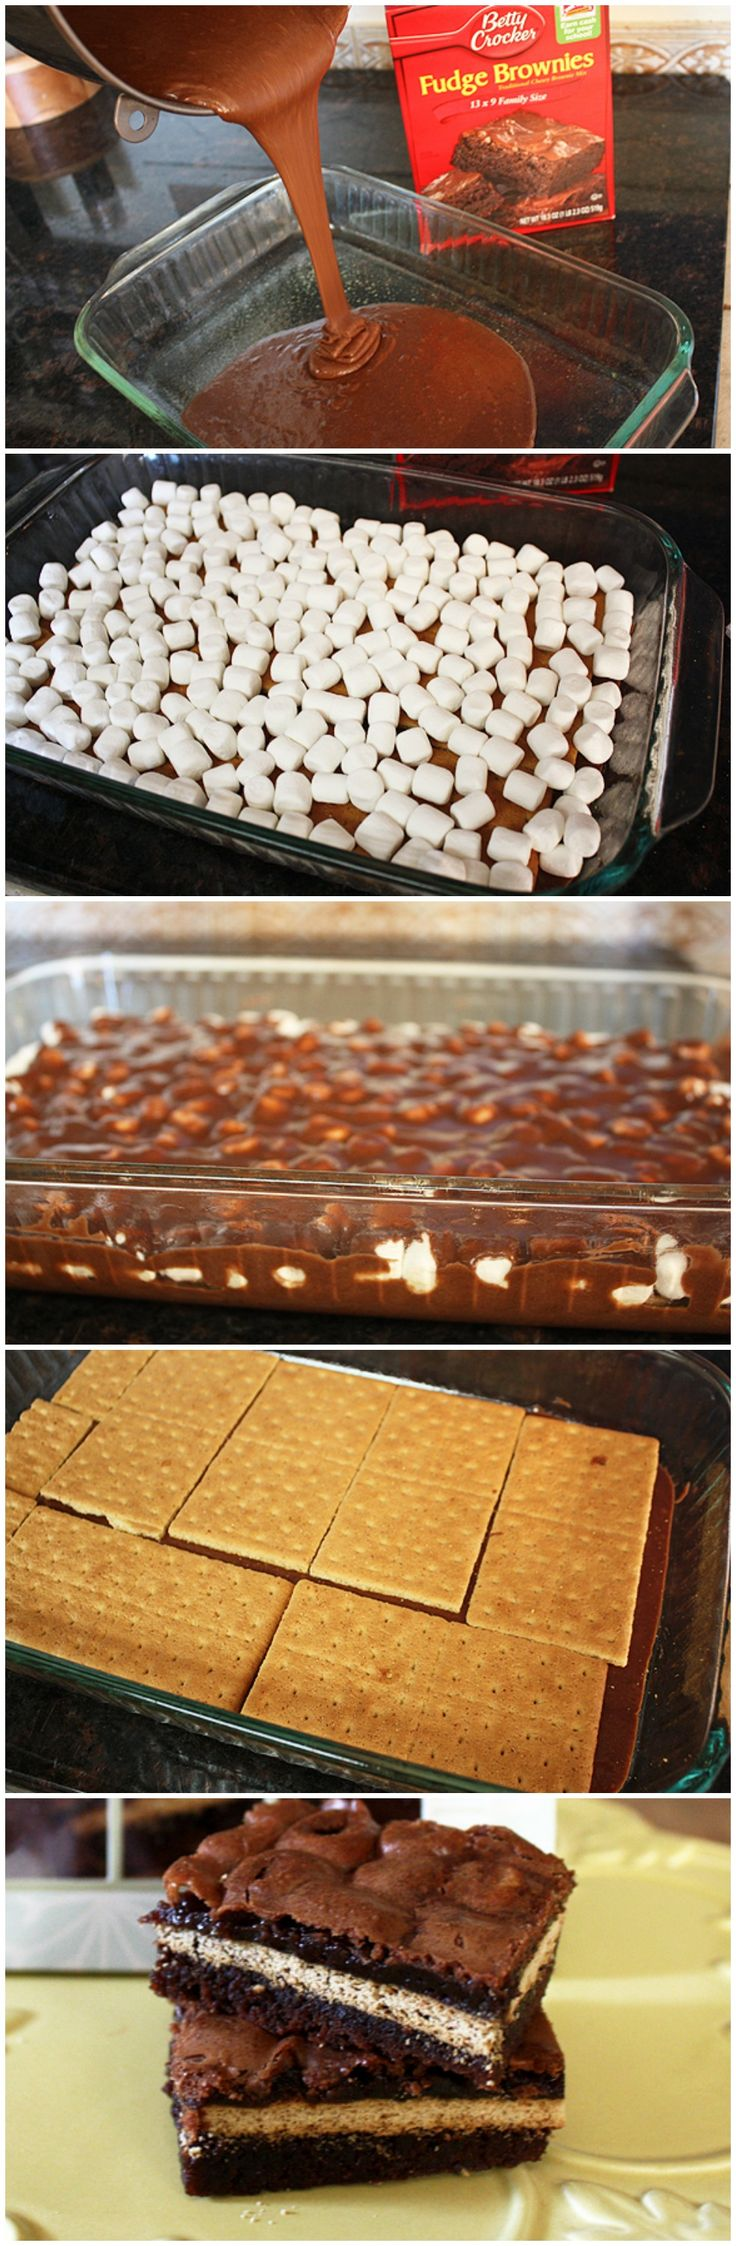 Inside Out S'mores Bars #omg #yum Good I think I need to bake a little longer and I will try more marshmallows next time